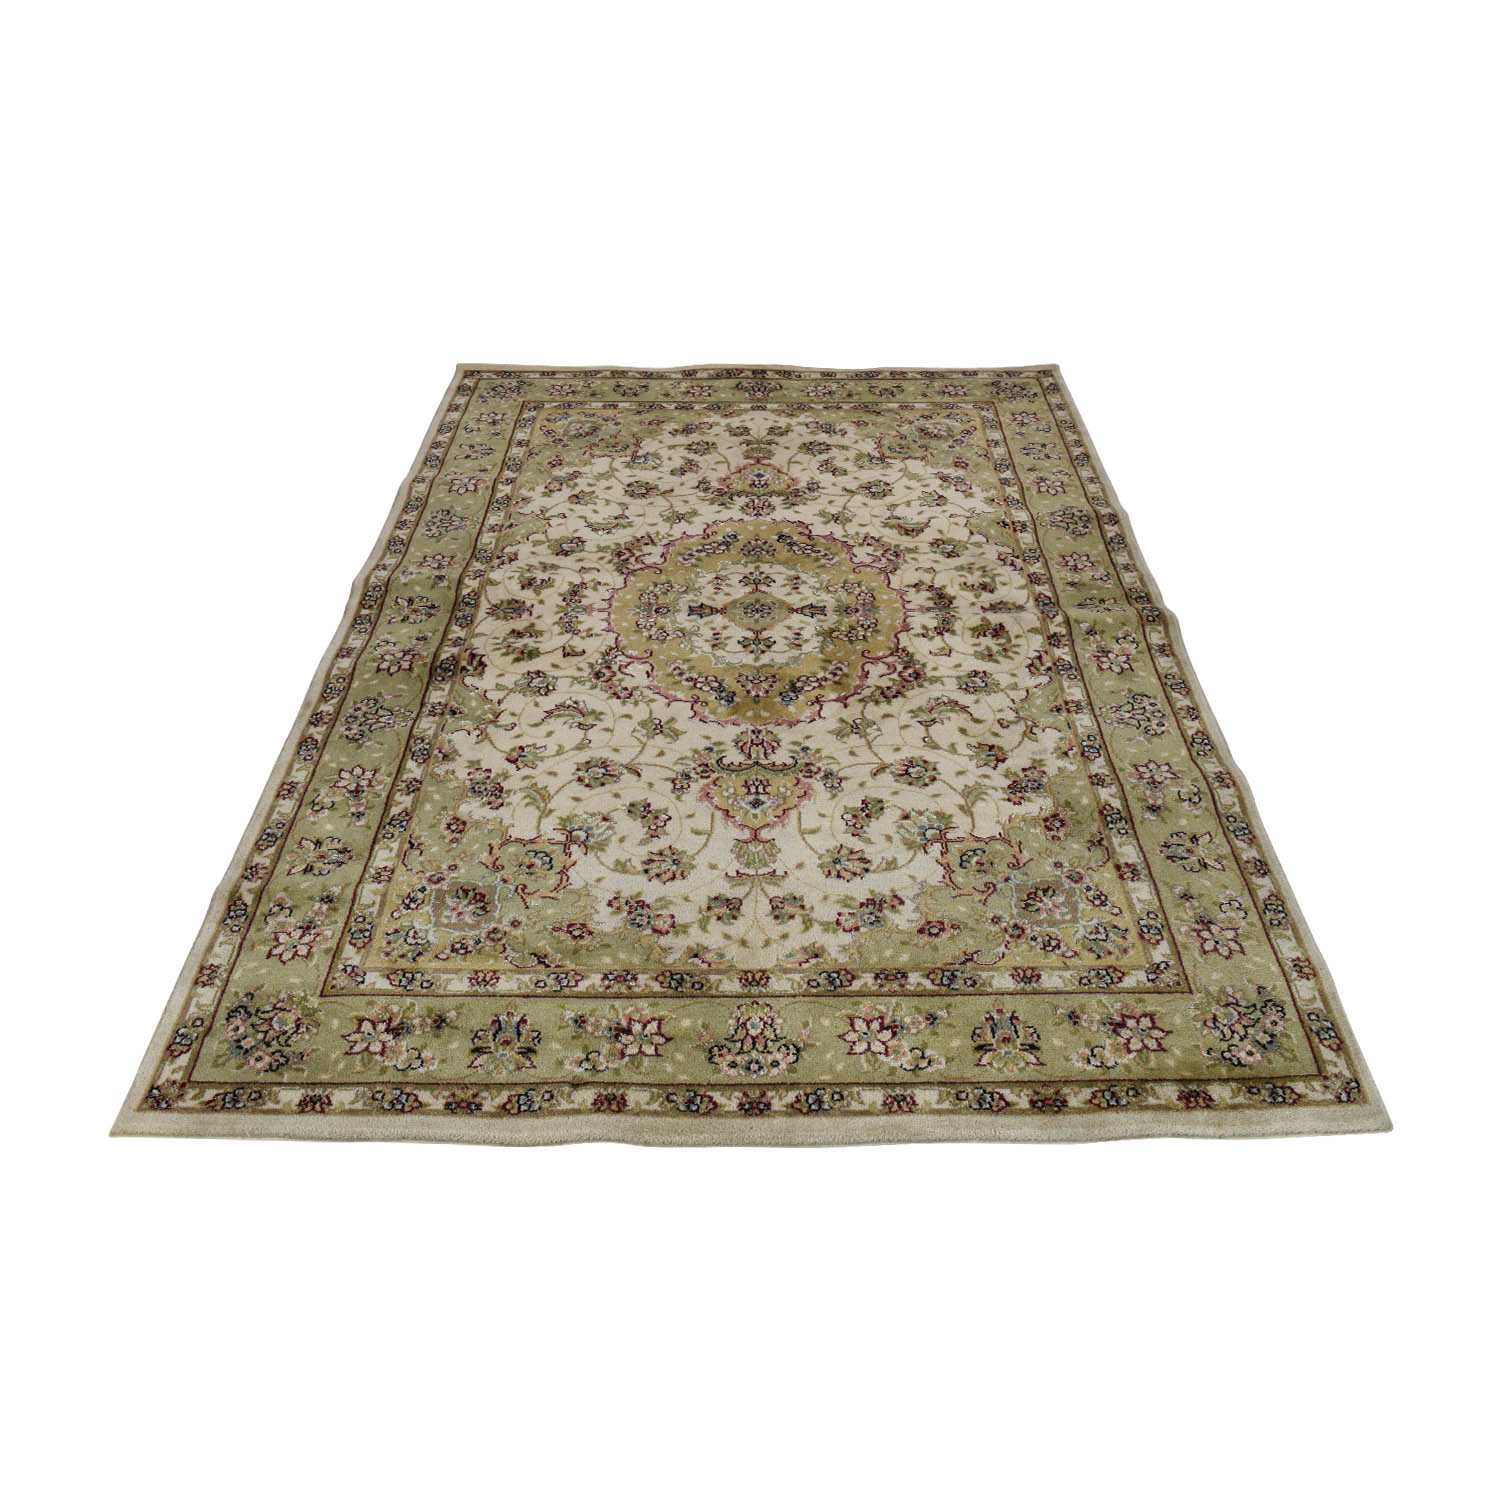 Unknown Brand Oversized Area Rug used